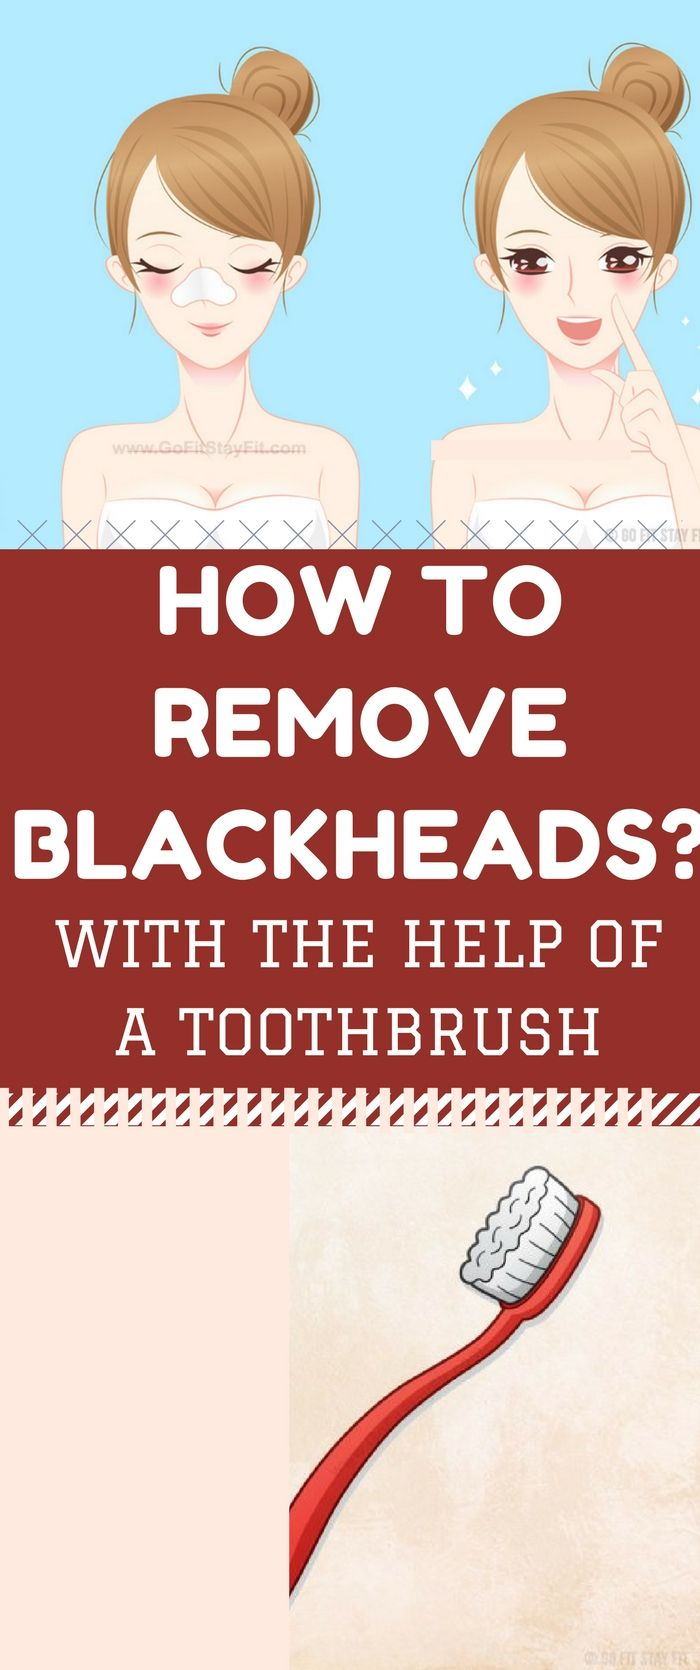 How to Remove Blackheads with the Help of a Toothbrush..!!!!!